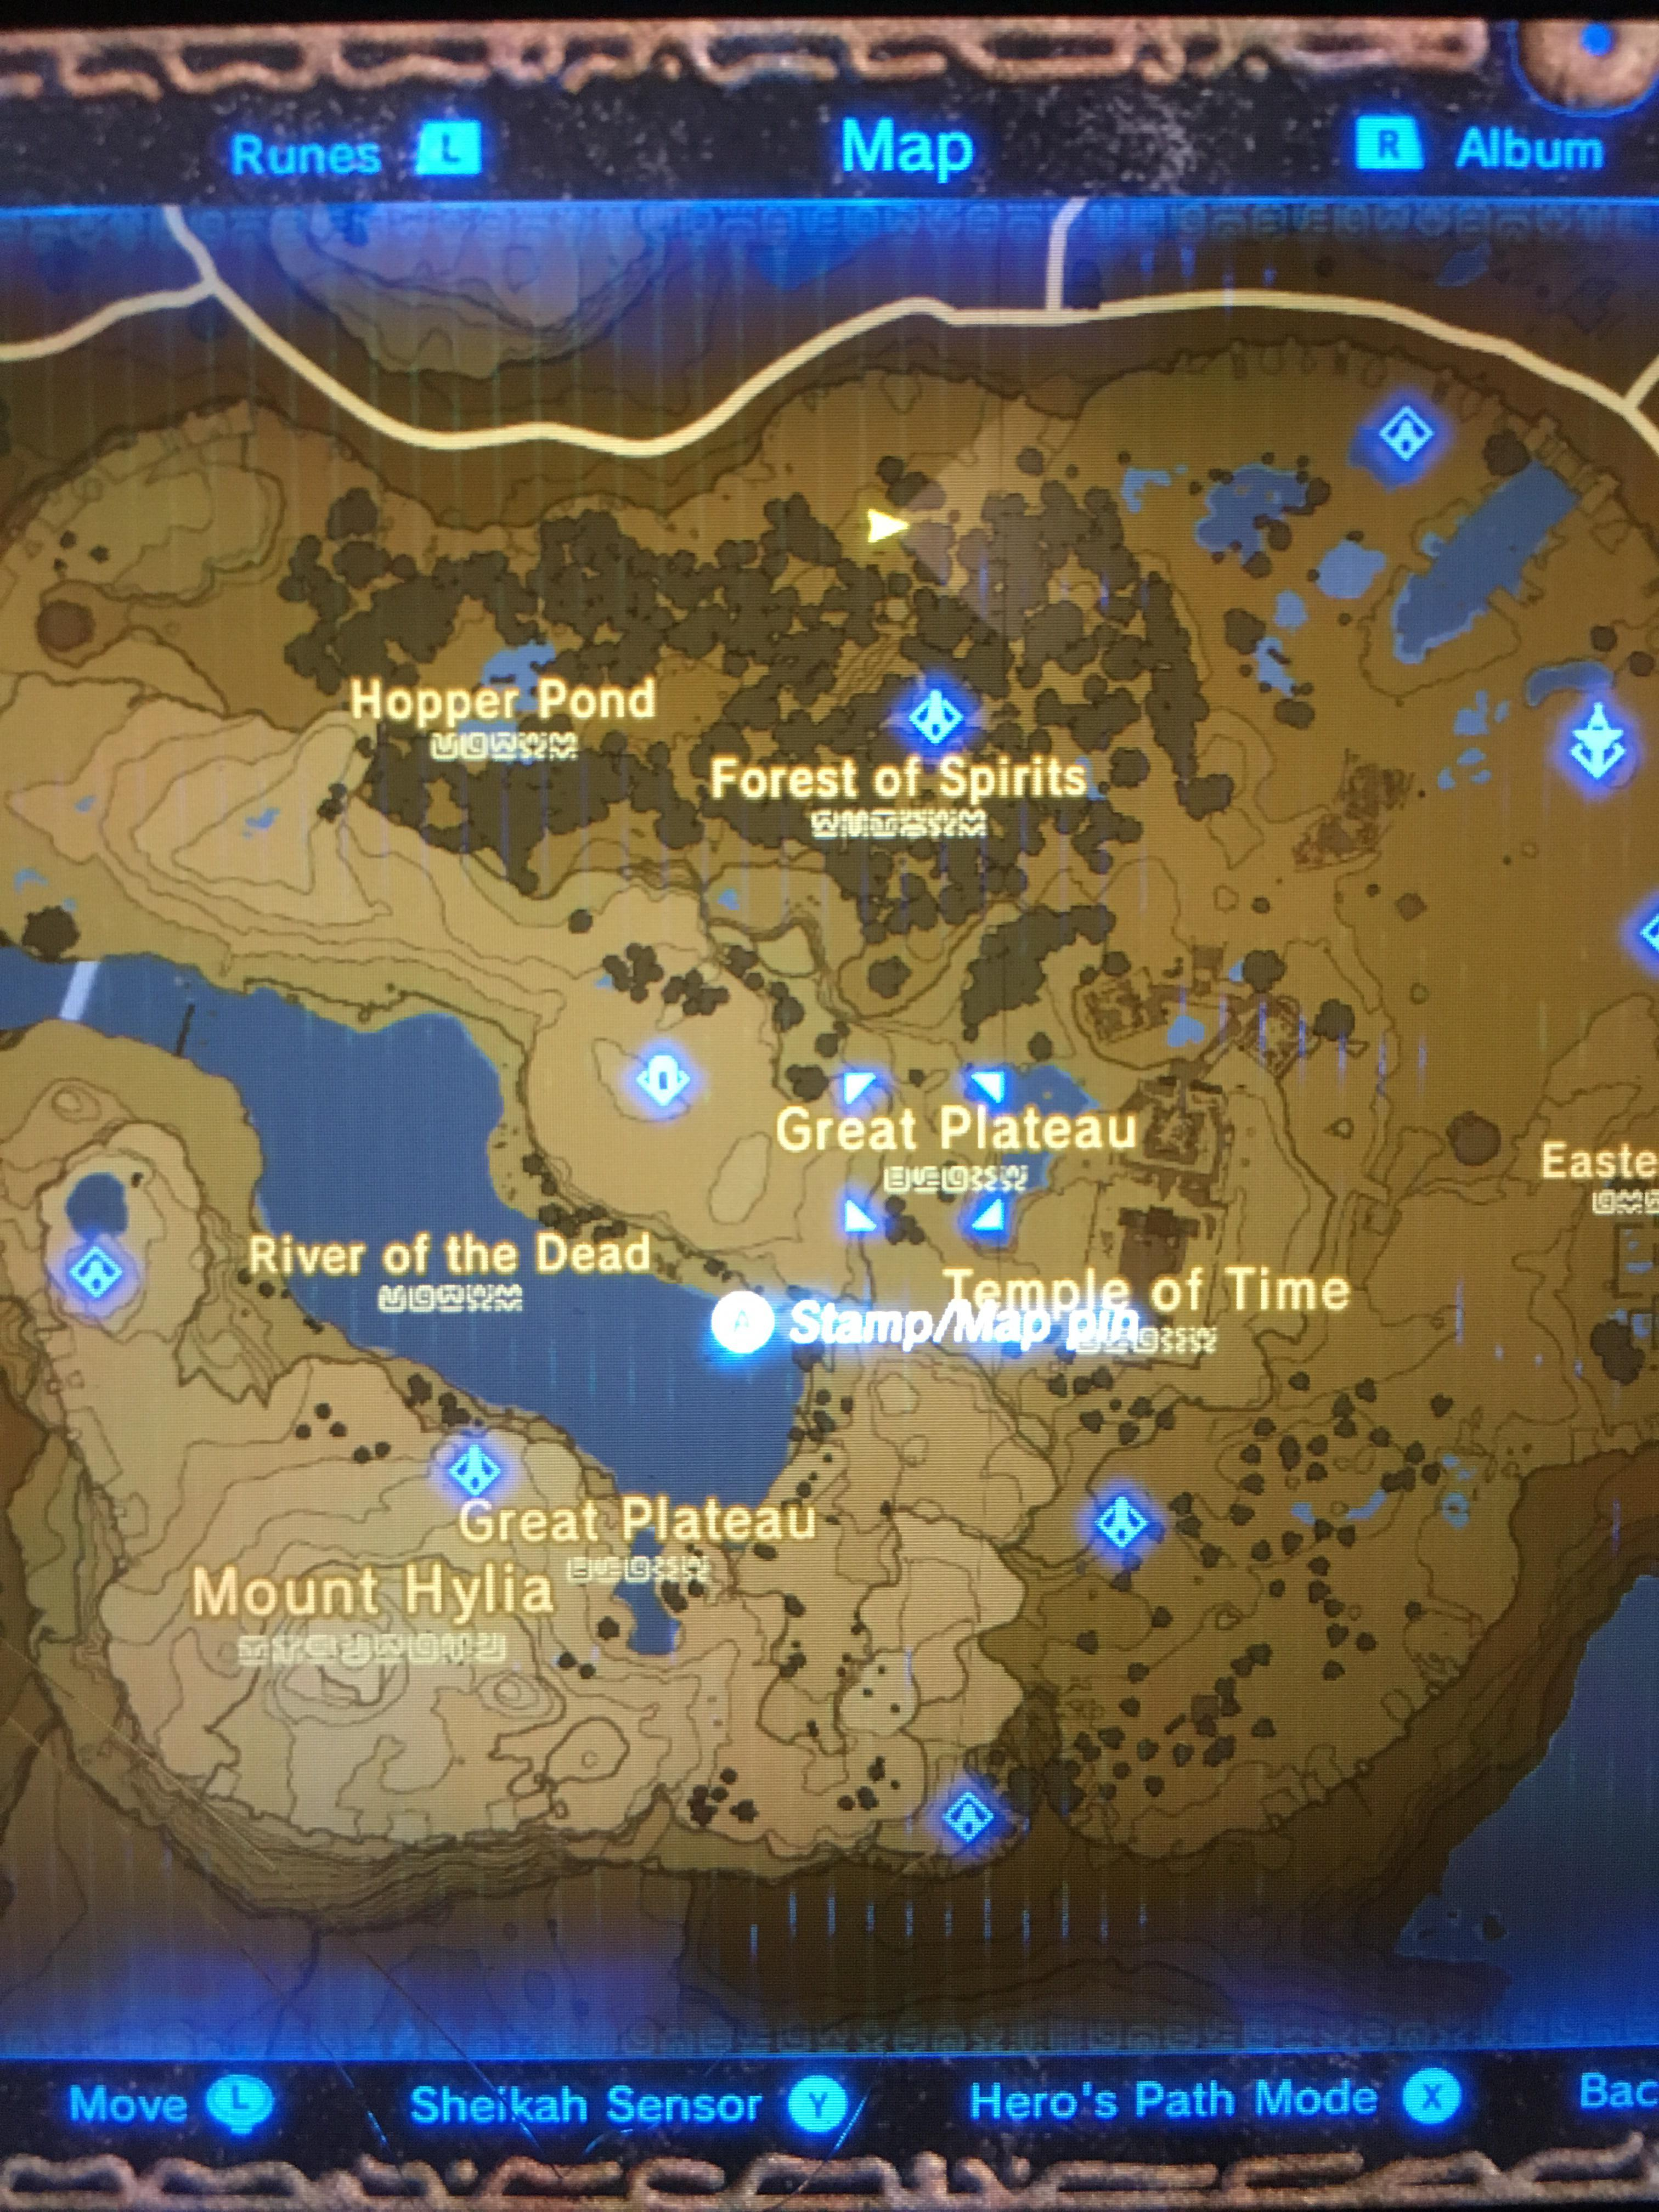 Full Botw Map : Crazy,, Think, Great, Plateau, Entire, Breath_of_the_Wild